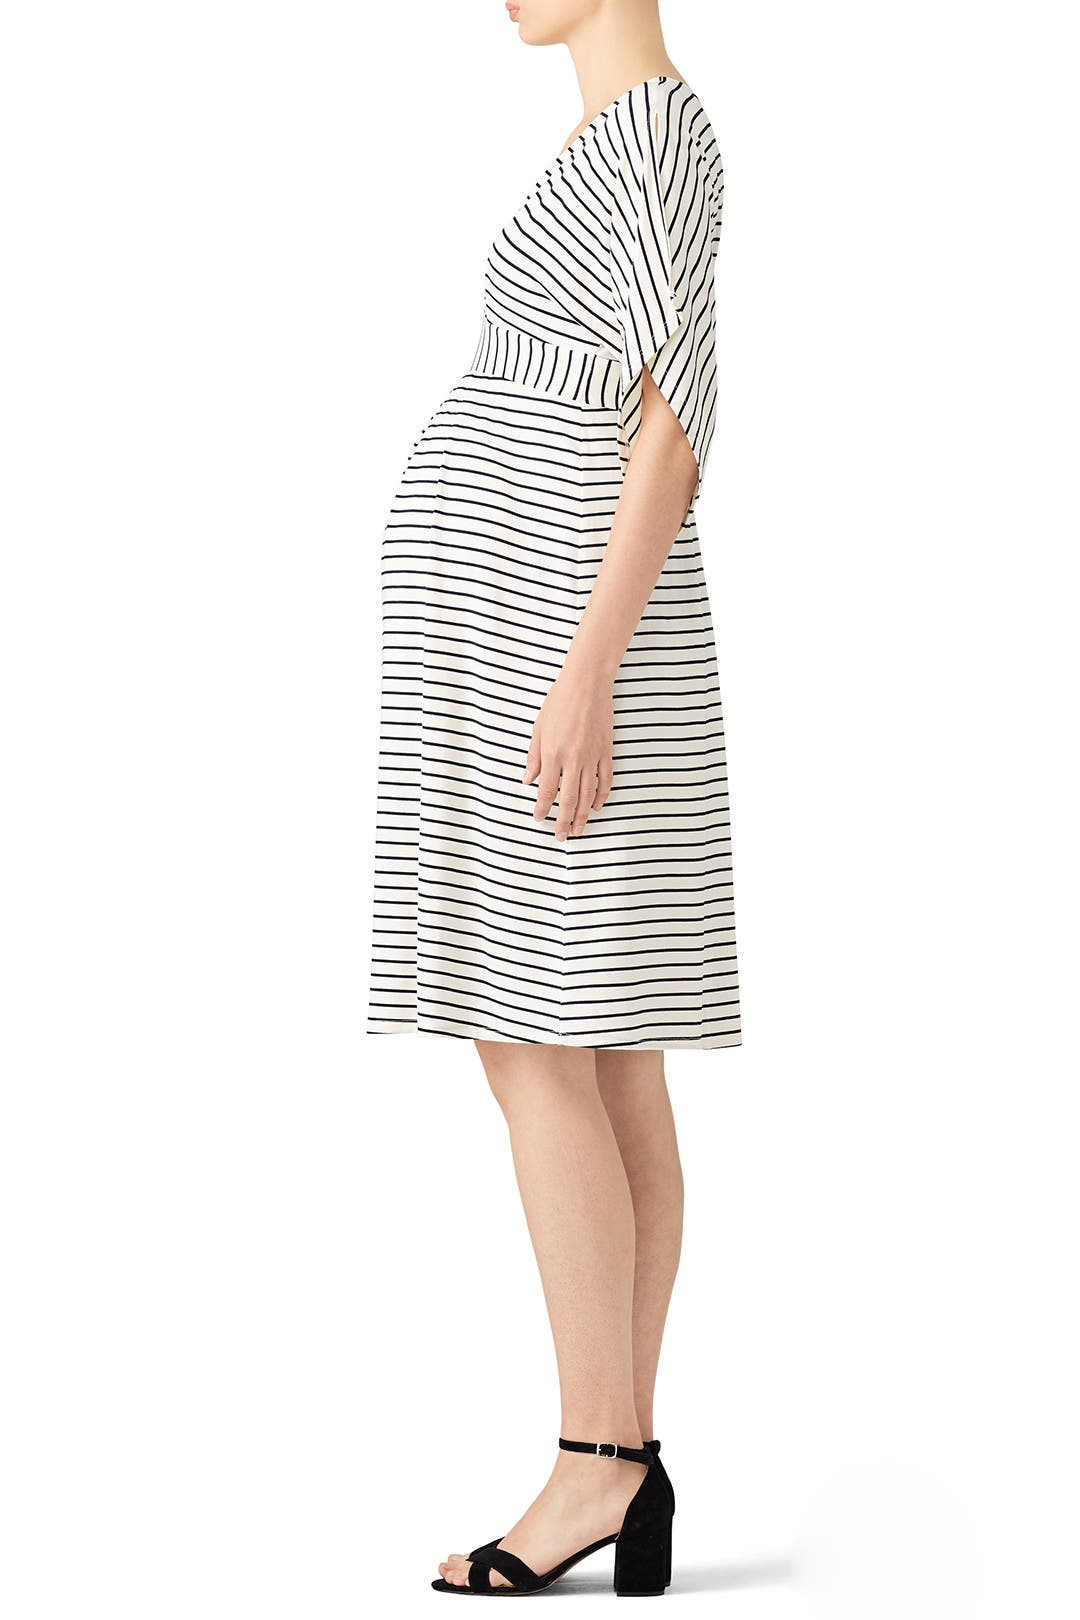 570226ef426 Ivory Kimono Maternity Dress by Ingrid & Isabel for $30 | Rent the Runway